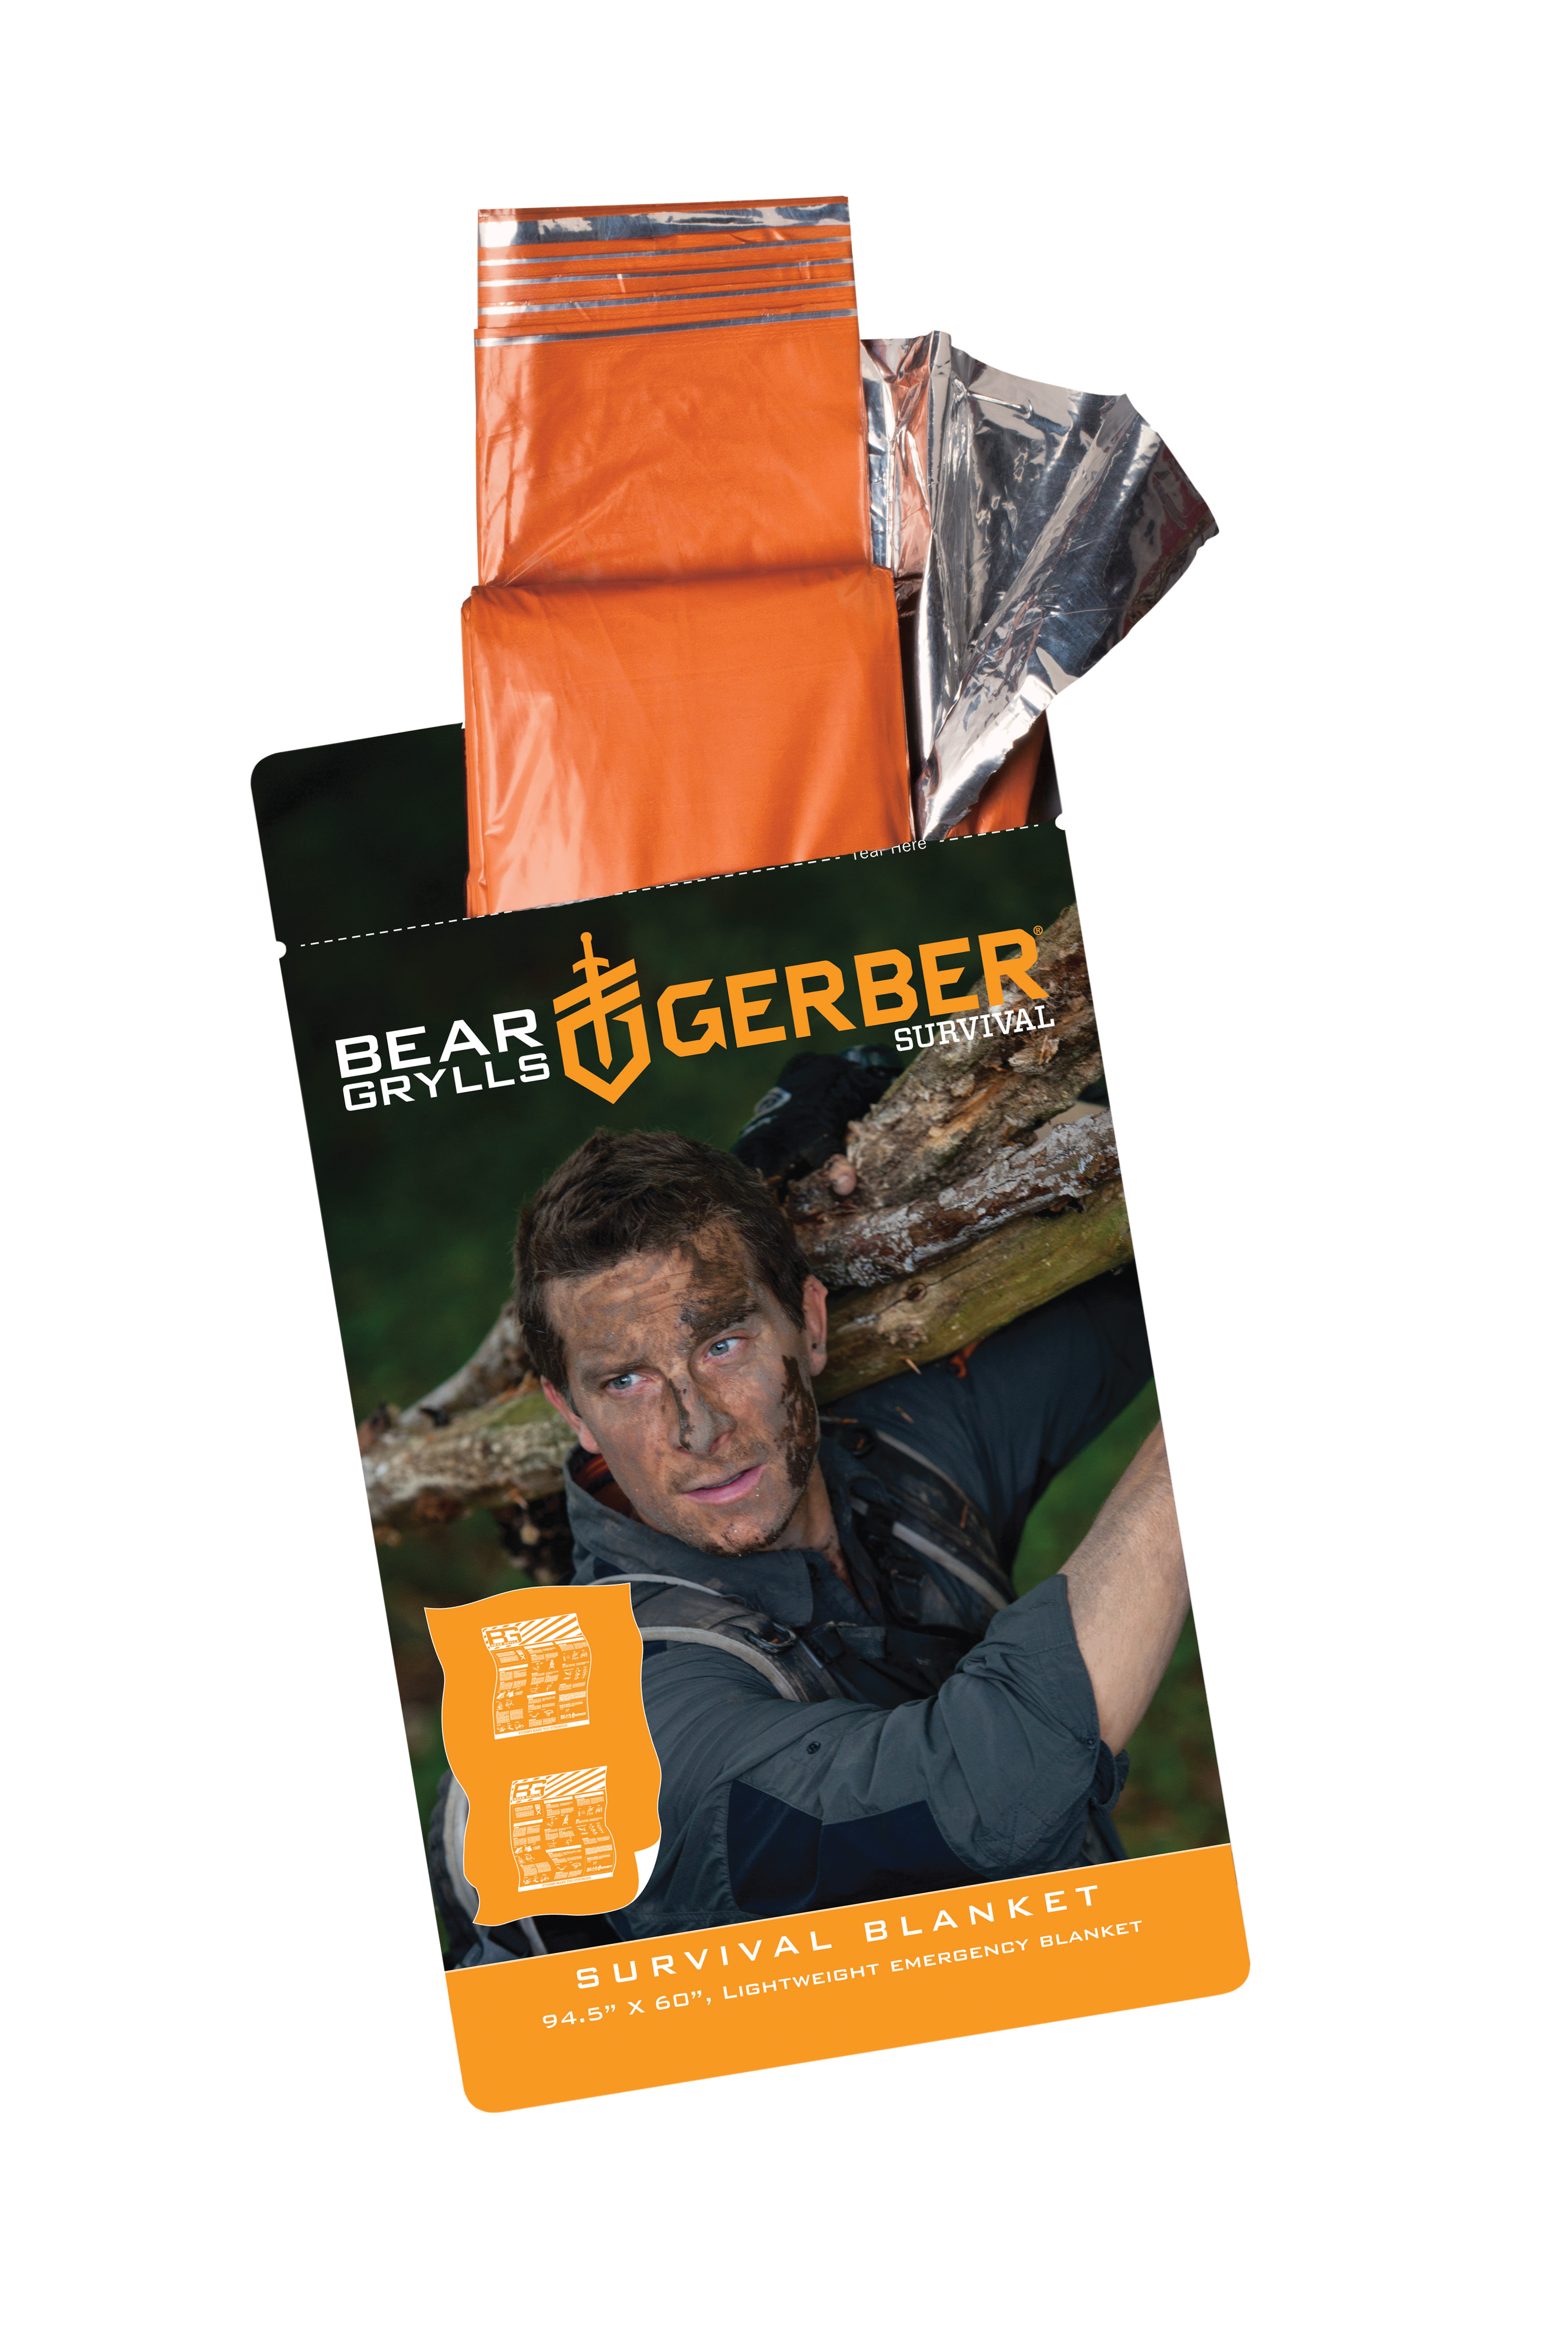 31-001785 - GERBER Bear Grylls Survival Blanket Blister